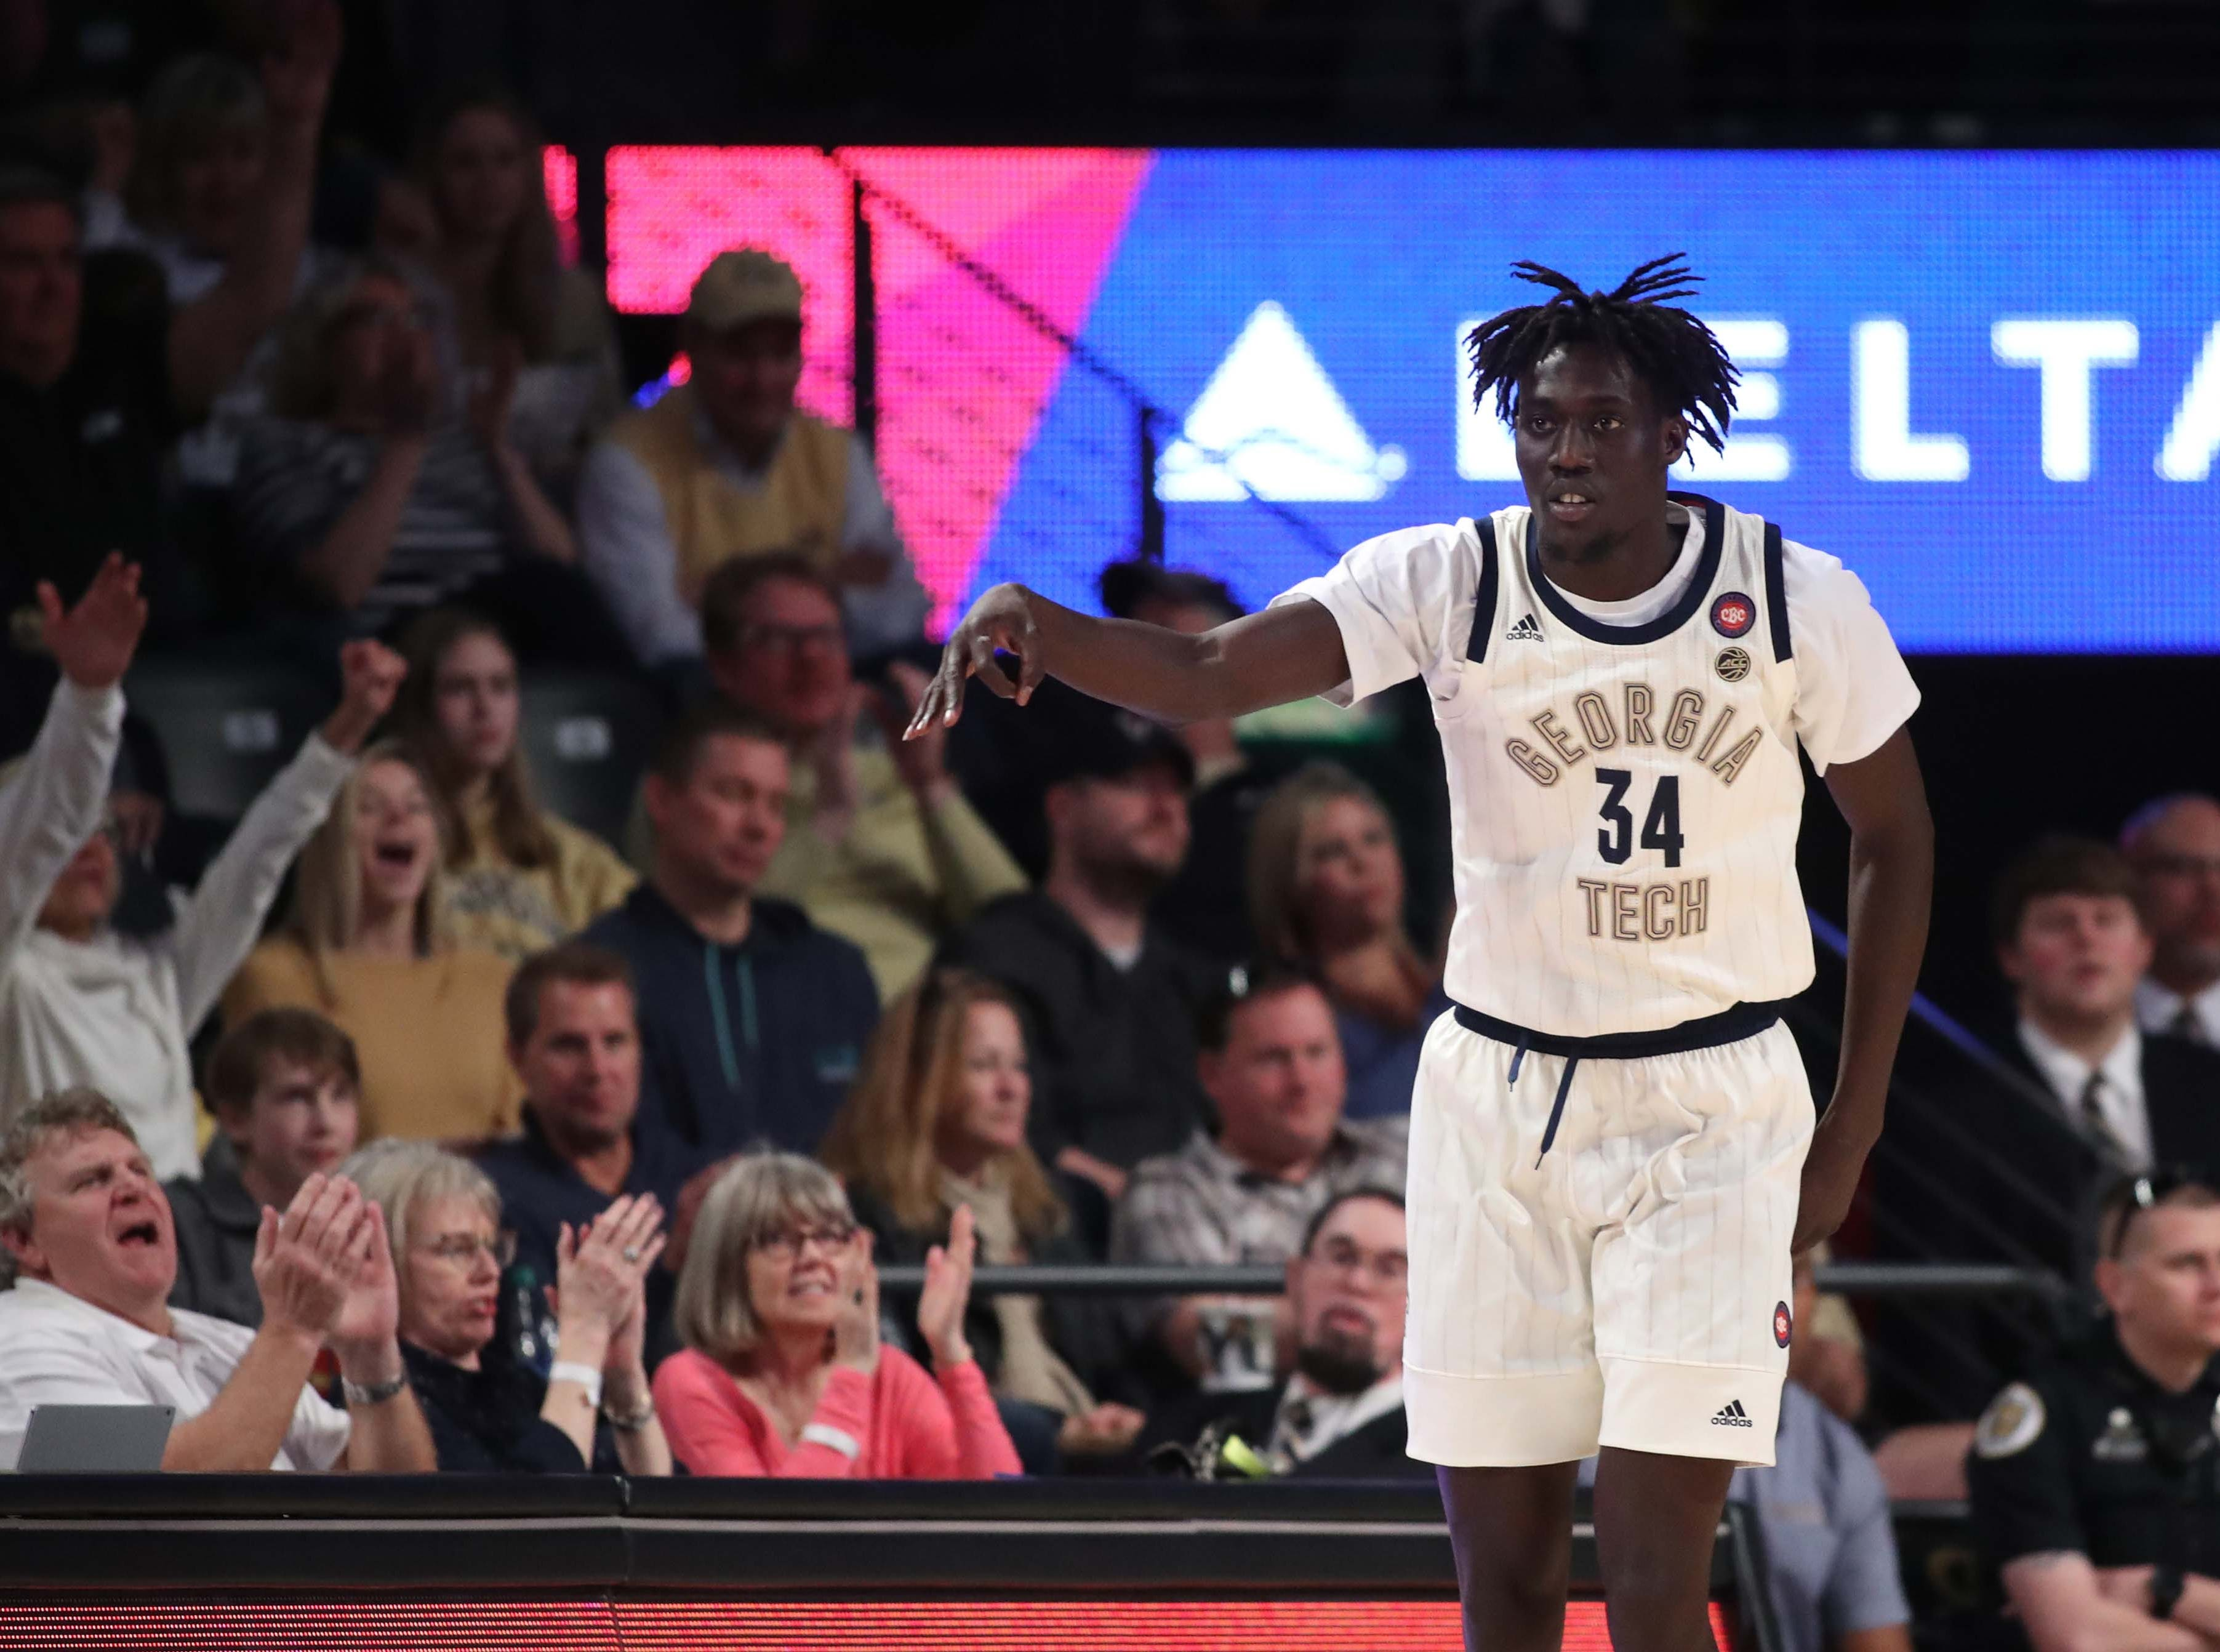 Feb 16, 2019; Atlanta, GA, USA; Georgia Tech Yellow Jackets forward Abdoulaye Gueye (34) celebrates a basket in the second half against the Florida State Seminoles at McCamish Pavilion. Mandatory Credit: Jason Getz-USA TODAY Sports